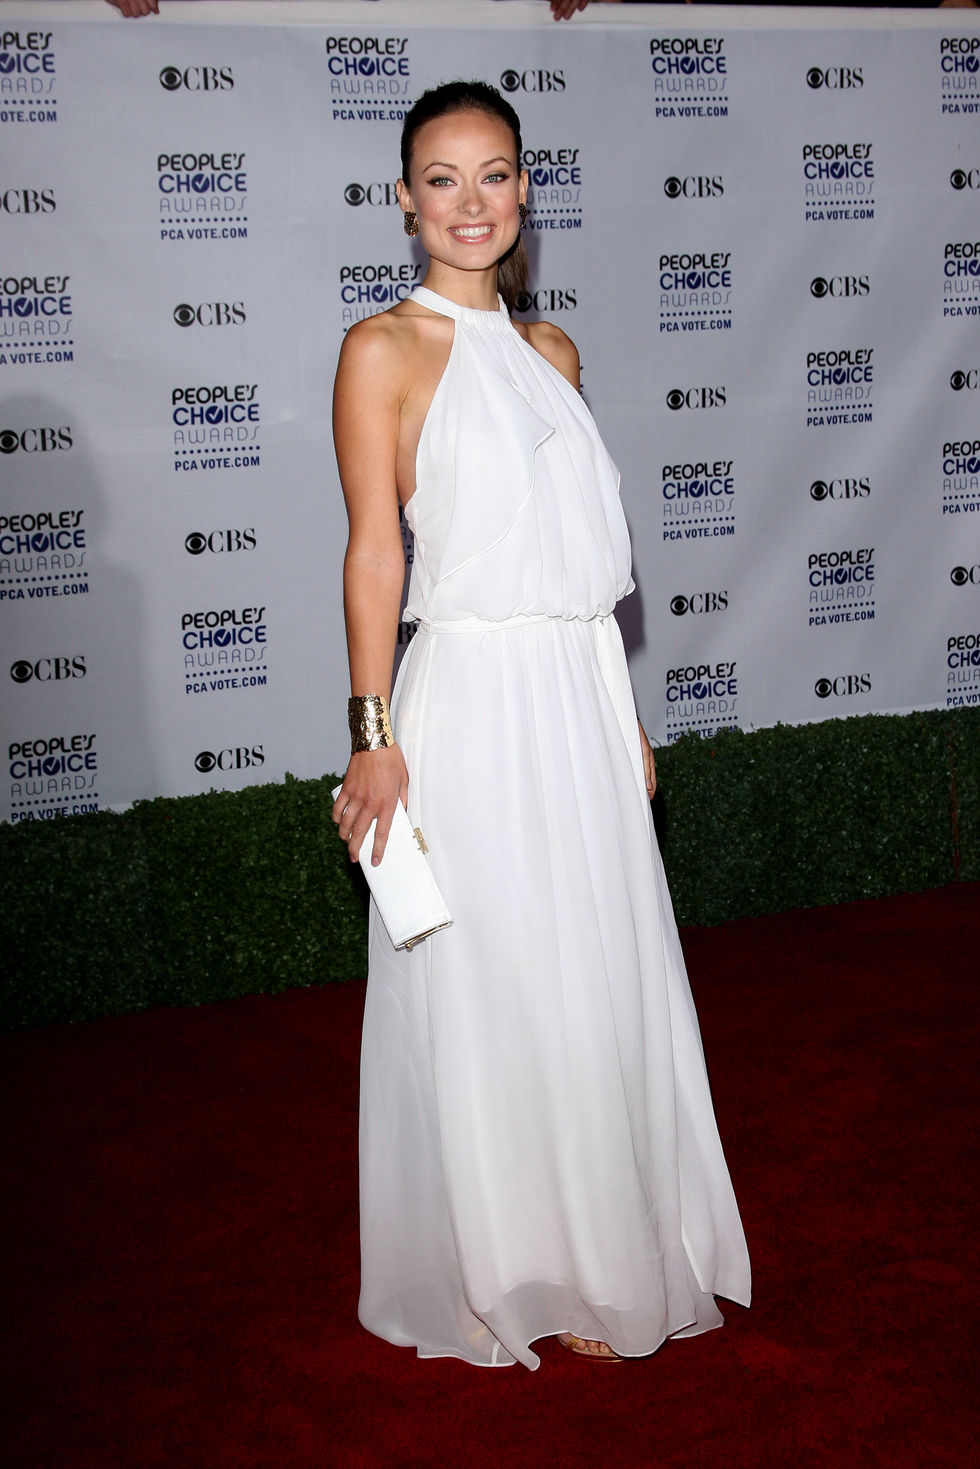 olivia-wilde-35th-peoples-choice-awards-in-los-angeles-01